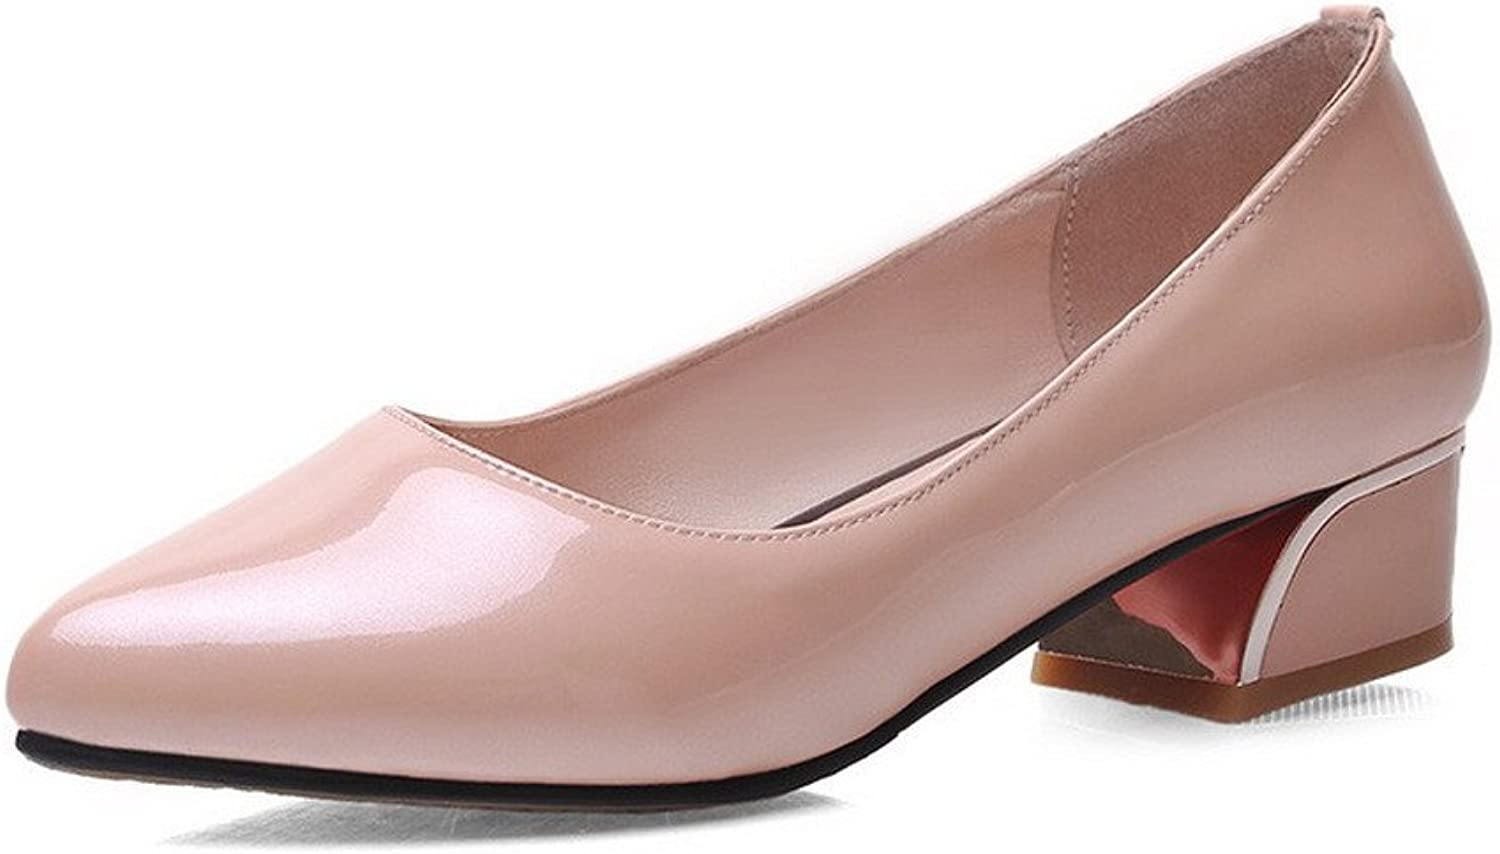 WeiPoot Women's Low-Heels Solid Pull-On Patent Leather Closed-Toe Pumps-shoes